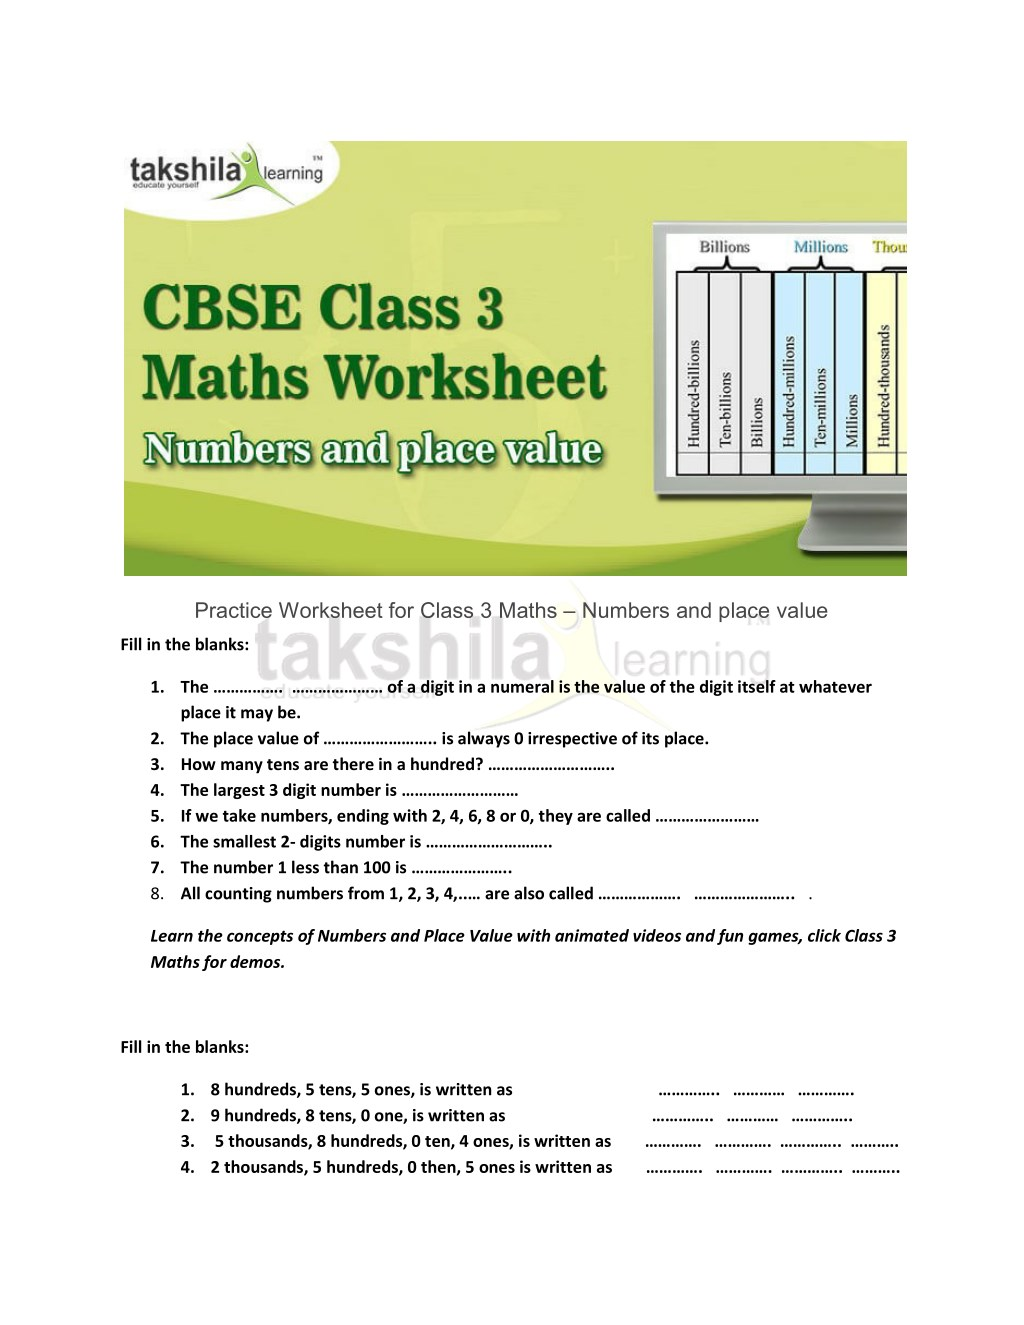 ppt  practice worksheet for class  maths  numbers and place value  practice worksheet for class  maths  numbers and place value  powerpoint  ppt presentation